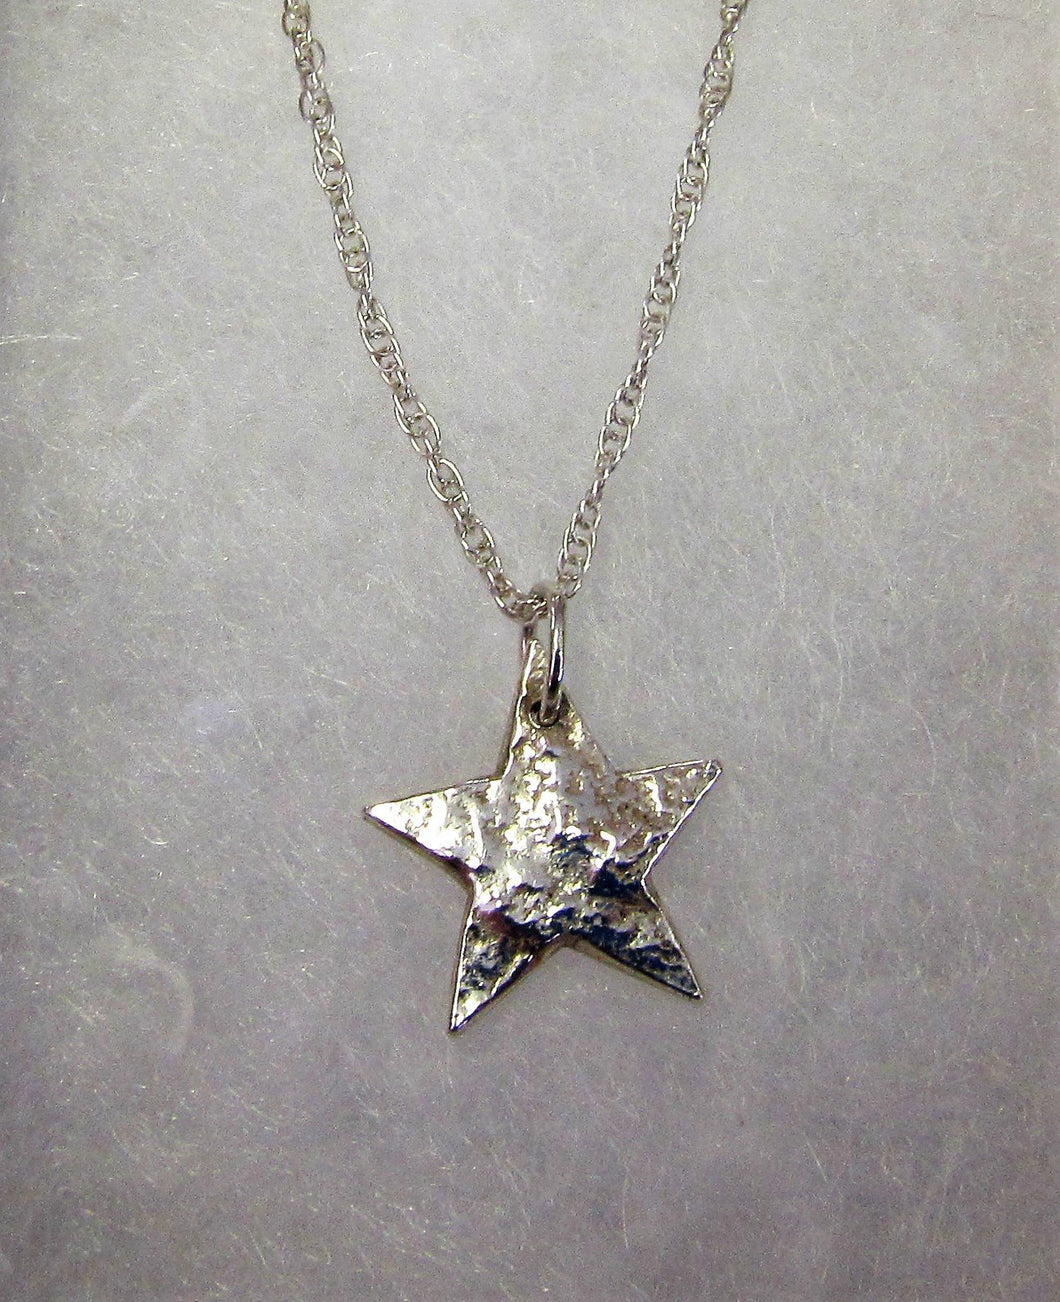 Handcrafted 925 sterling silver reticulated hand cut star necklace